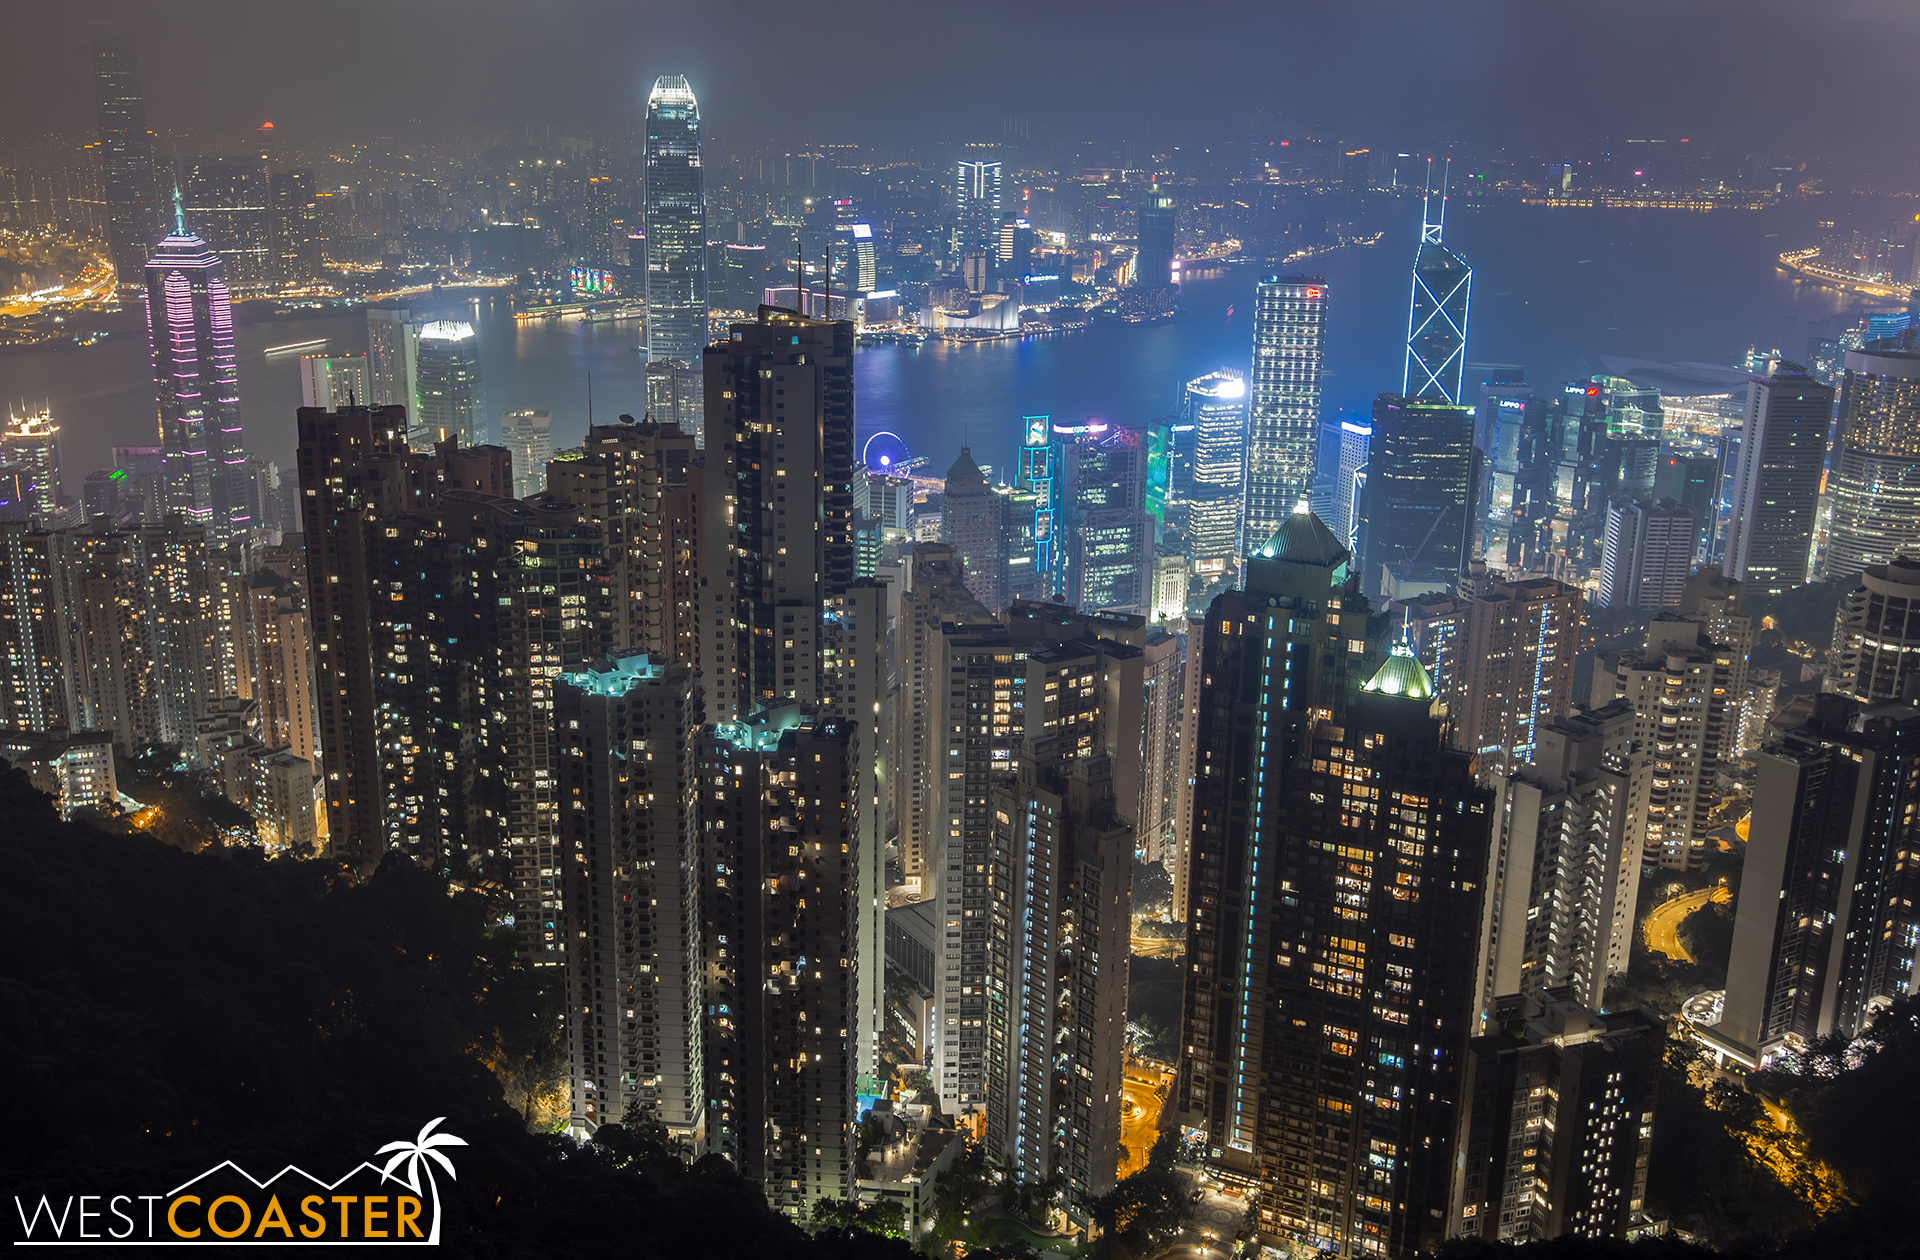 Perhaps the most popularly photographed view of Hong Kong comes from Victoria Peak.